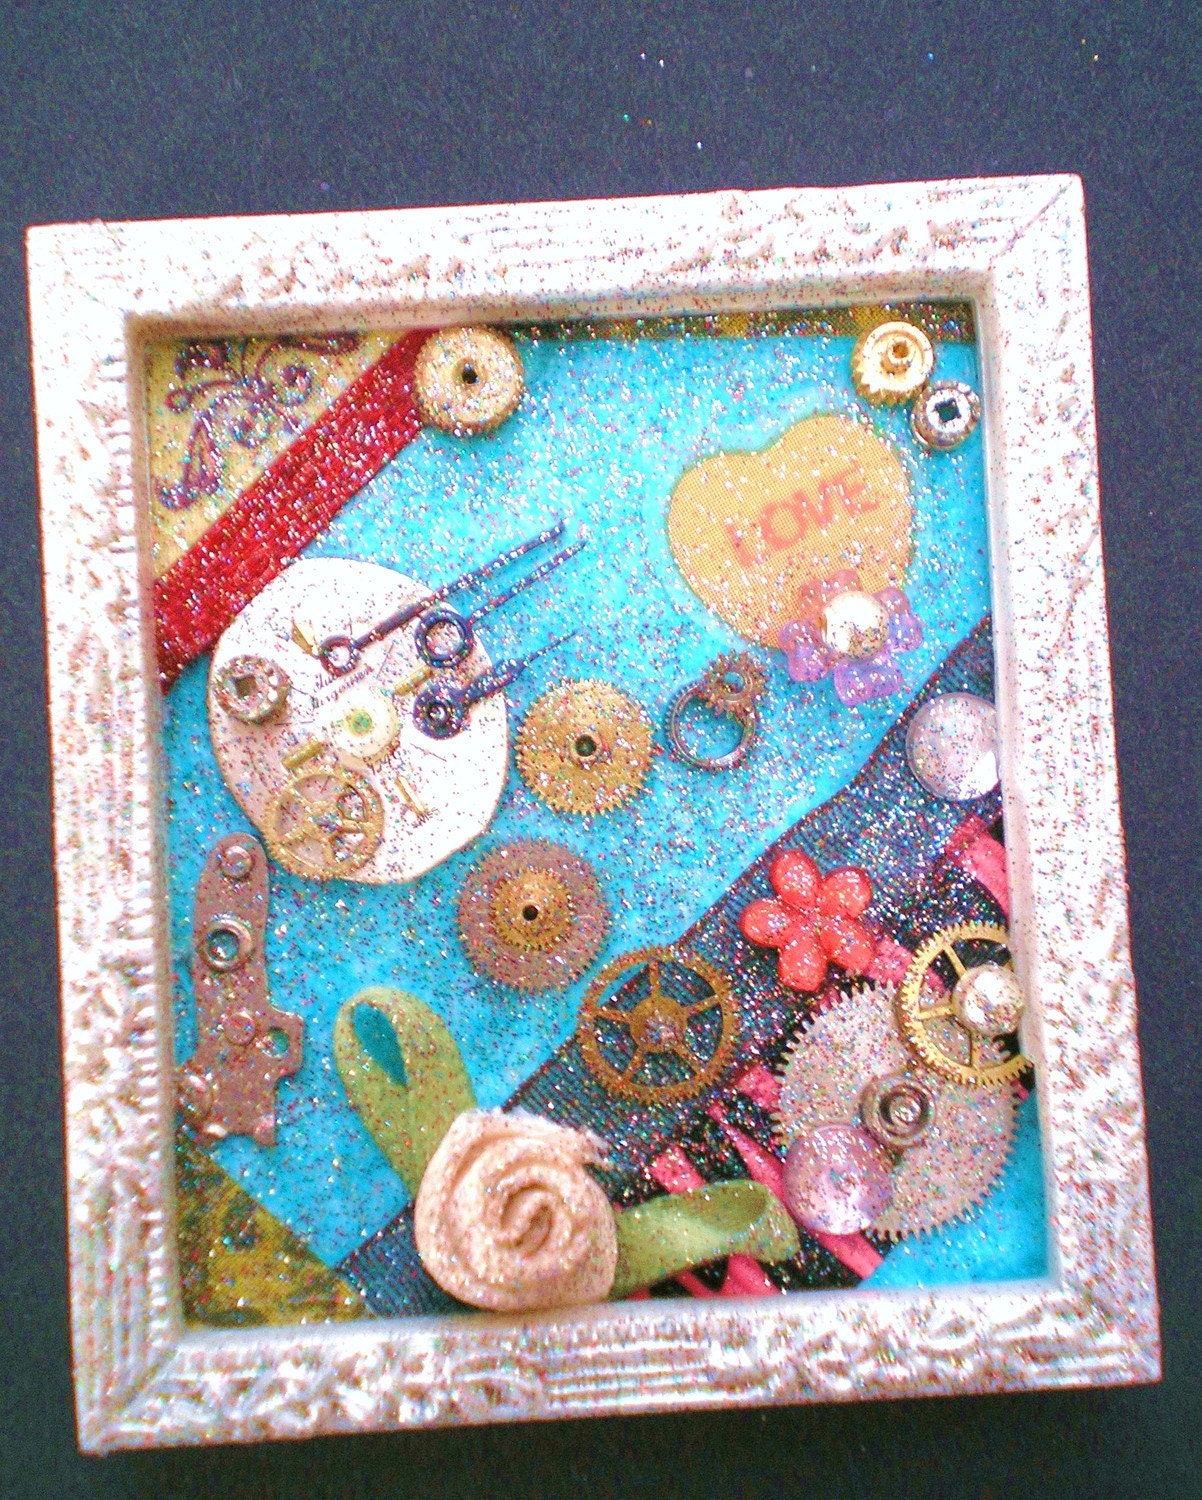 No Other Thought - Tiny Collage Mixed Media OOAK Framed Signed with Jewels Satin Flower Heart Ribbon Watch Parts